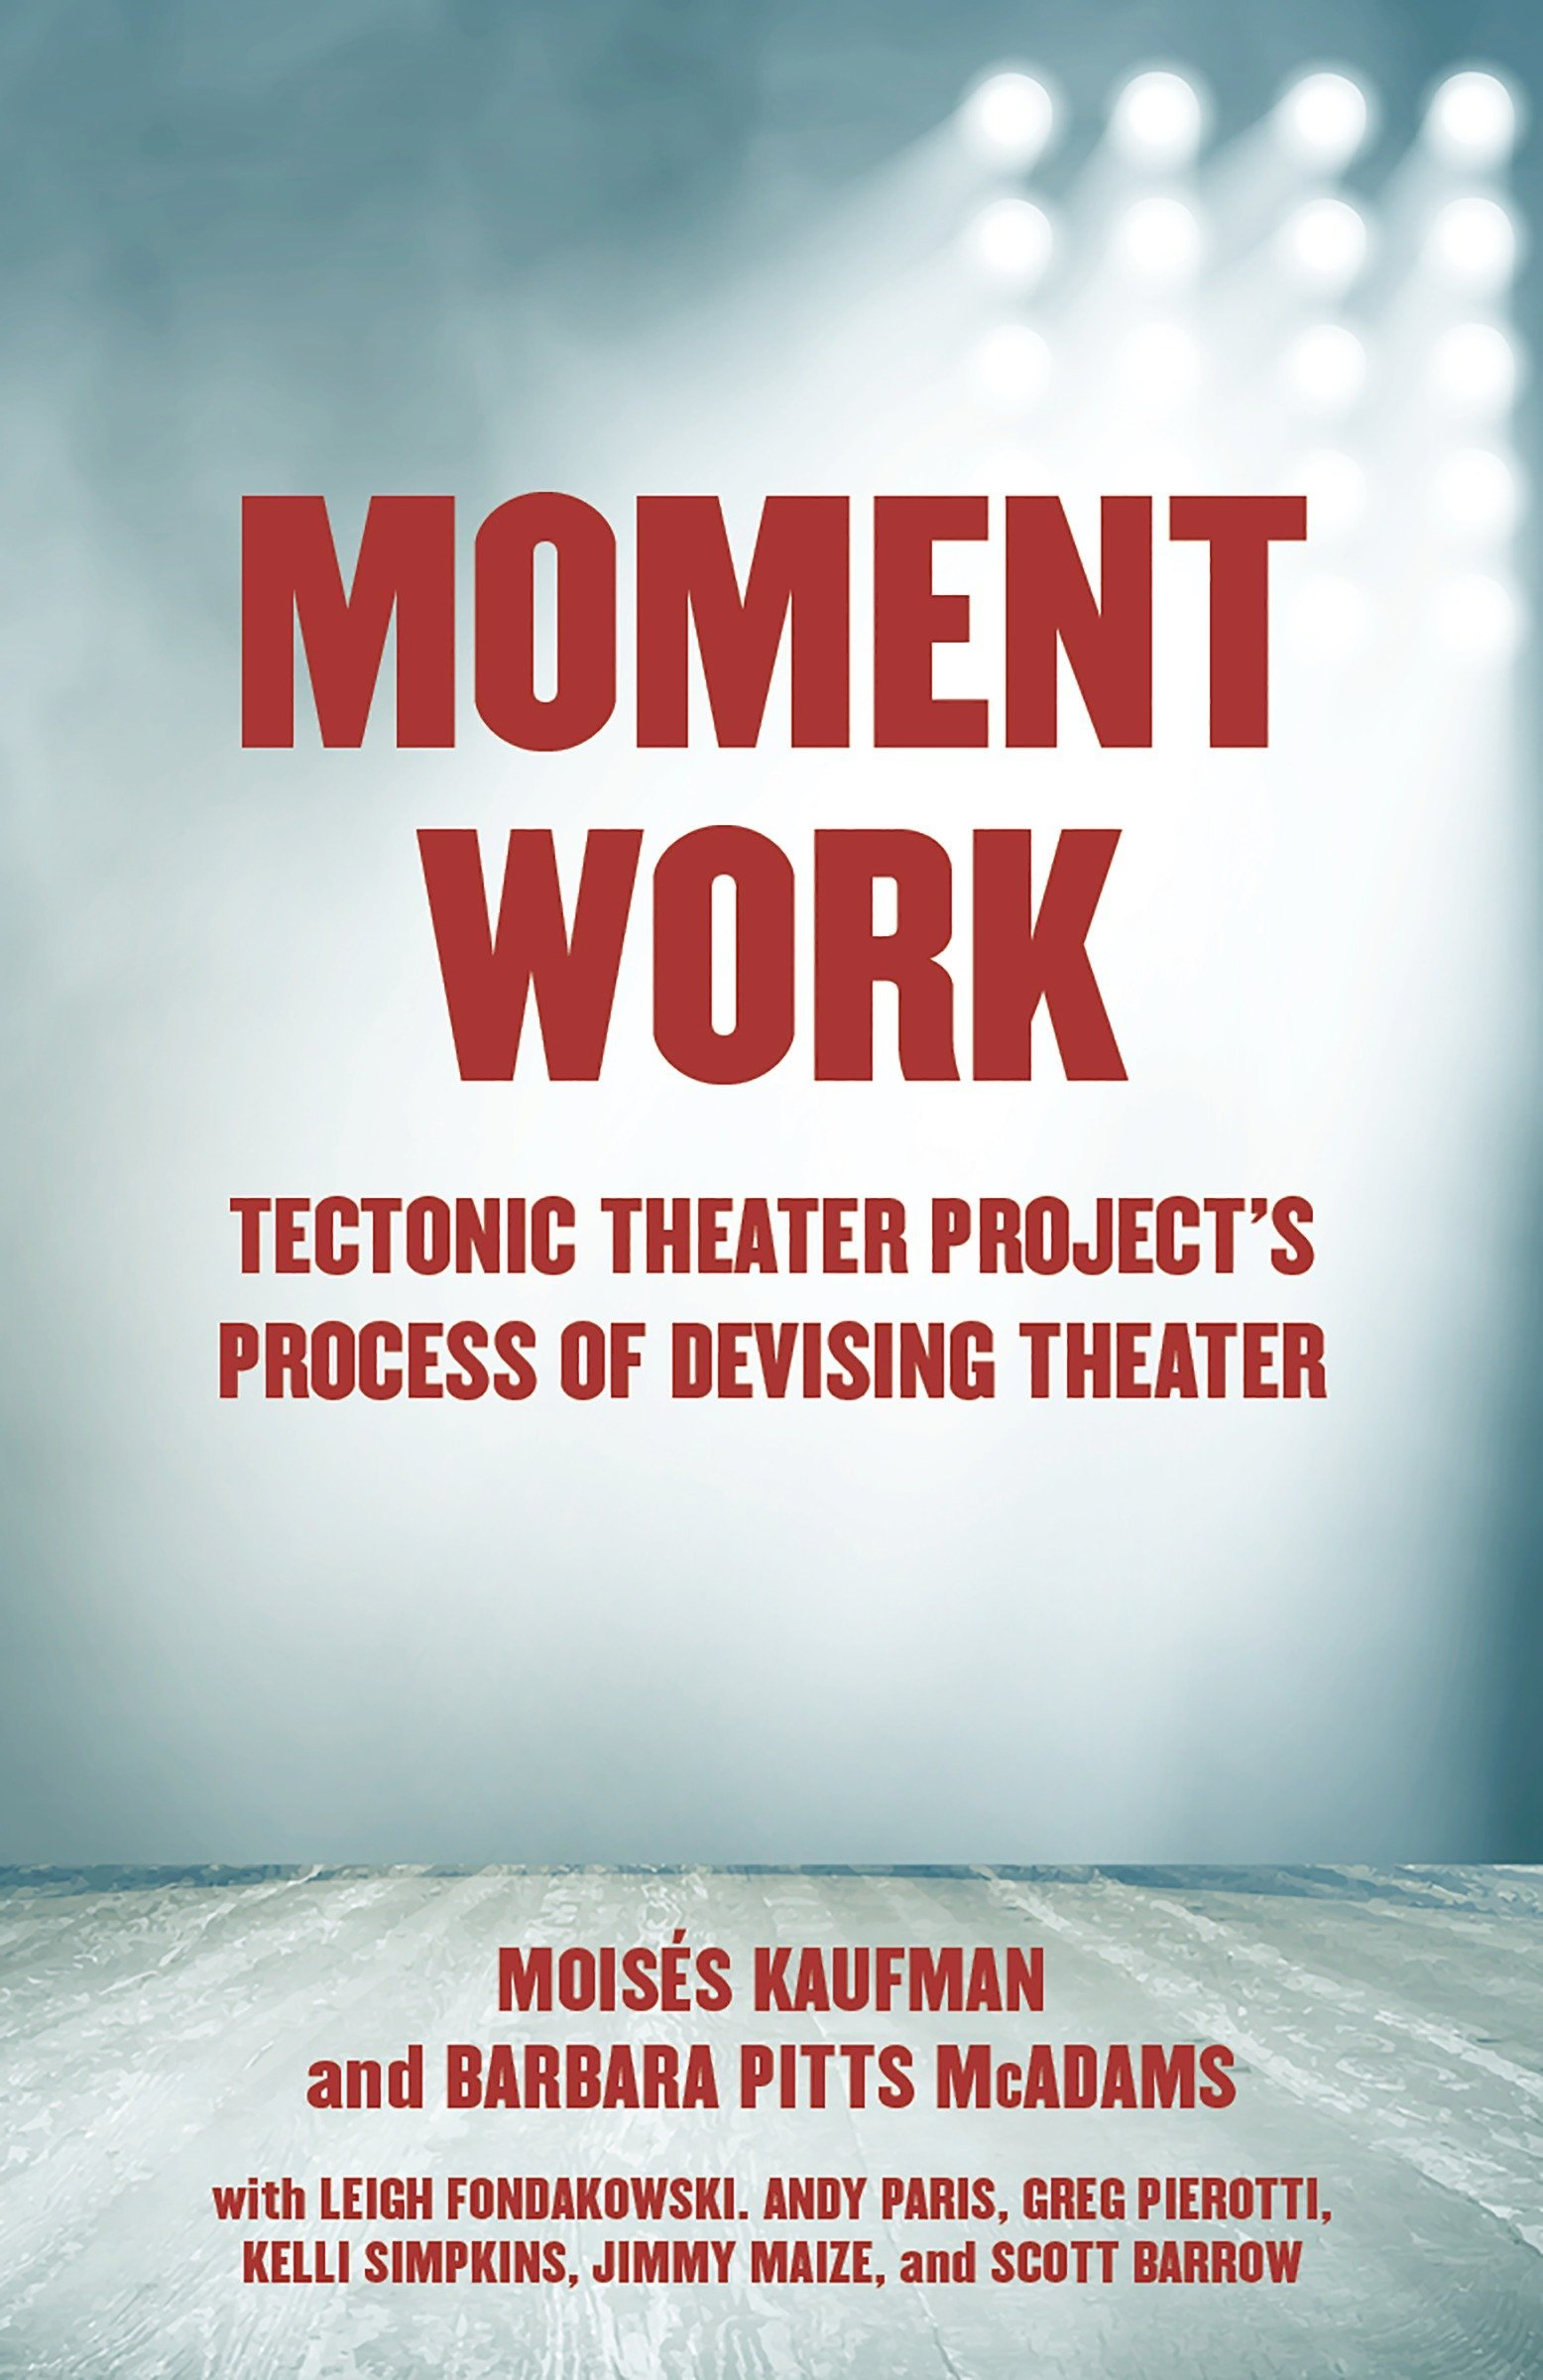 Moment Work: Tectonic Theater Project's Process of Devising Theater pdf